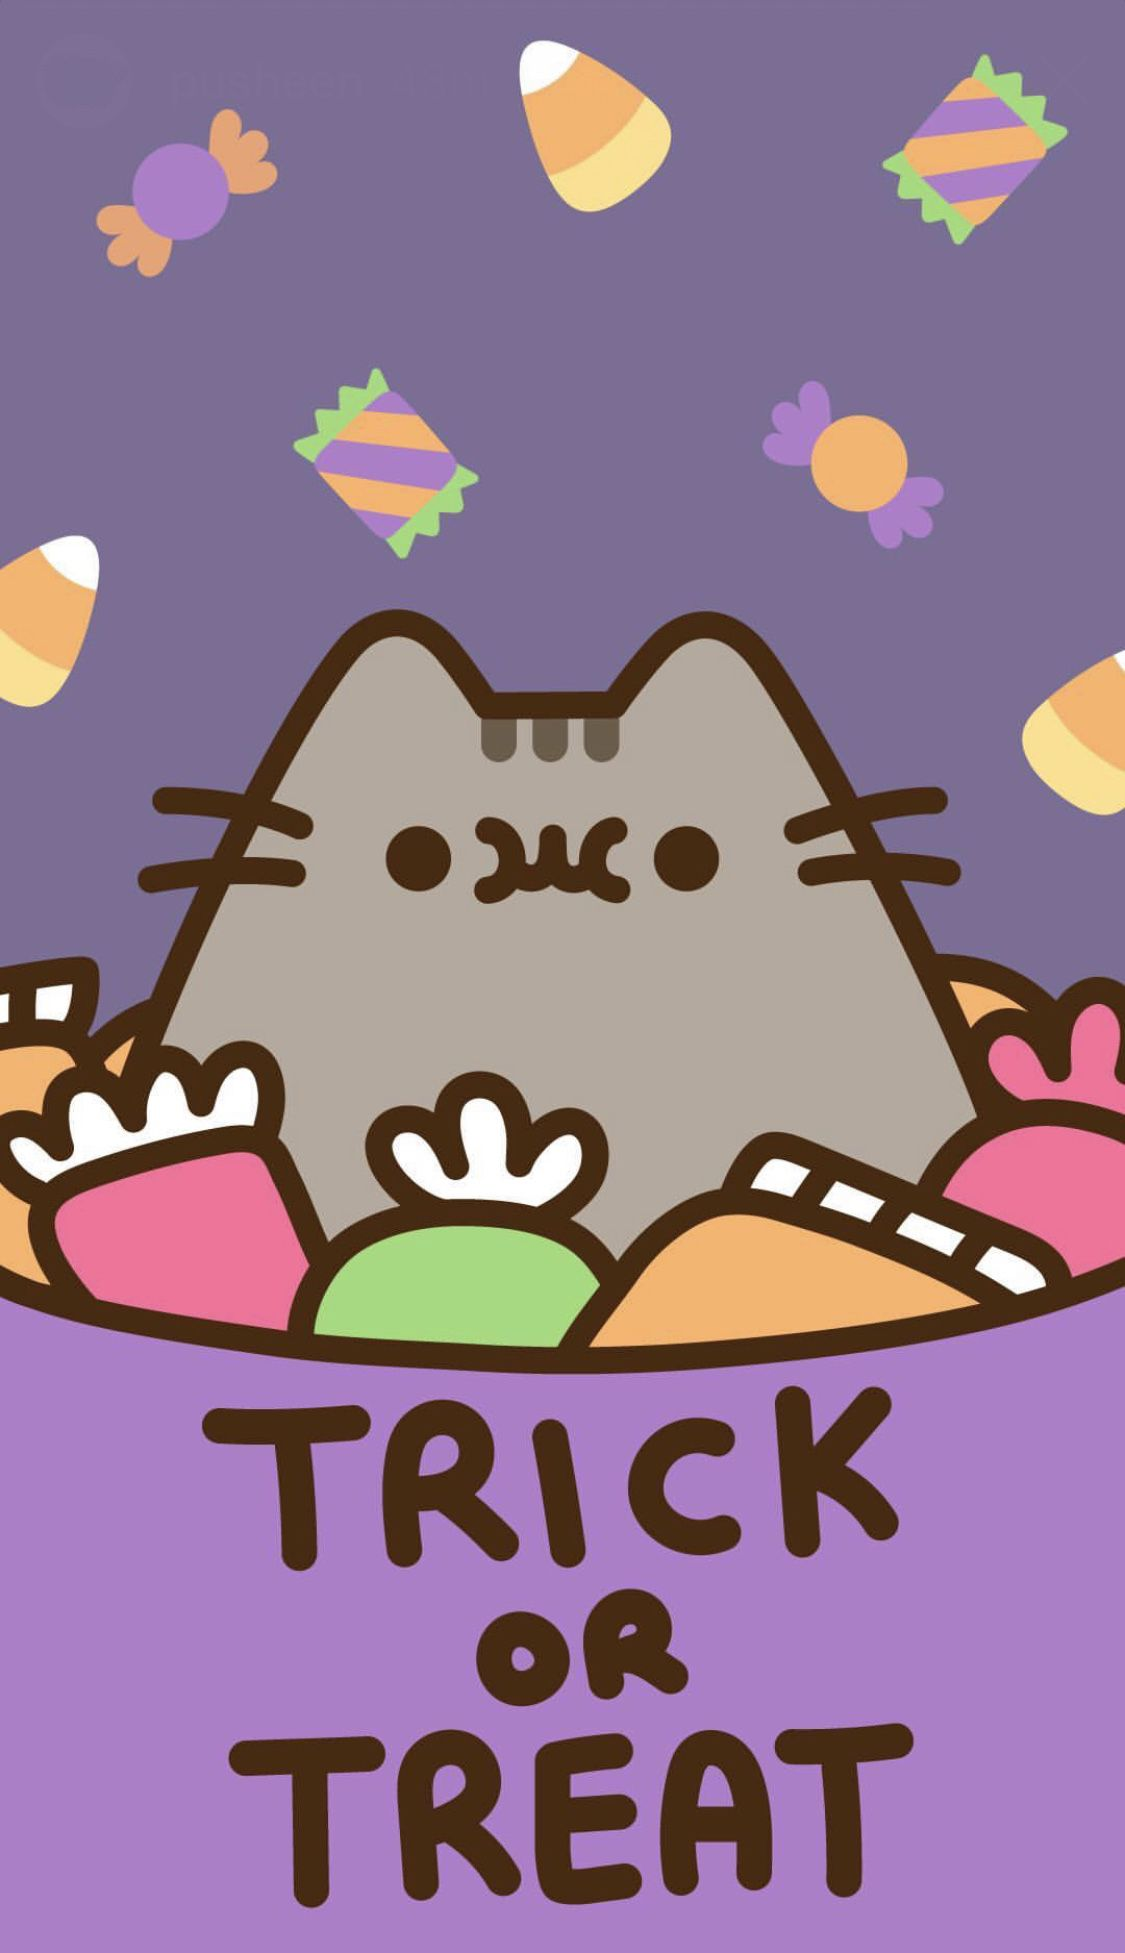 Pusheen Halloween Wallpaper Pusheen Cute Pusheen Cat Halloween Wallpaper